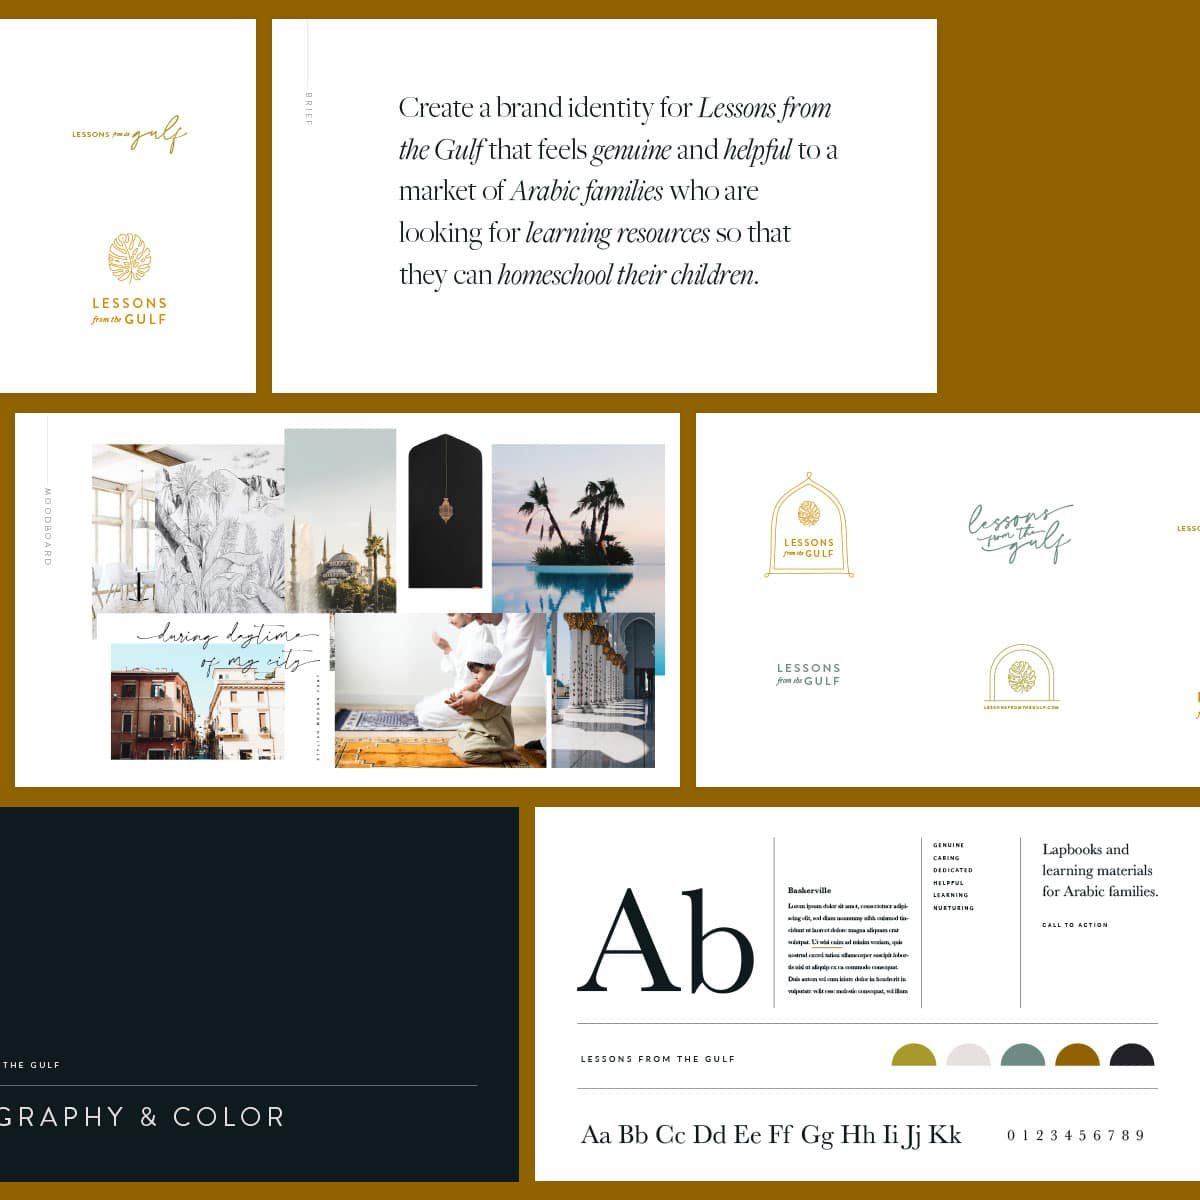 Lessons from the Gulf web design and branding